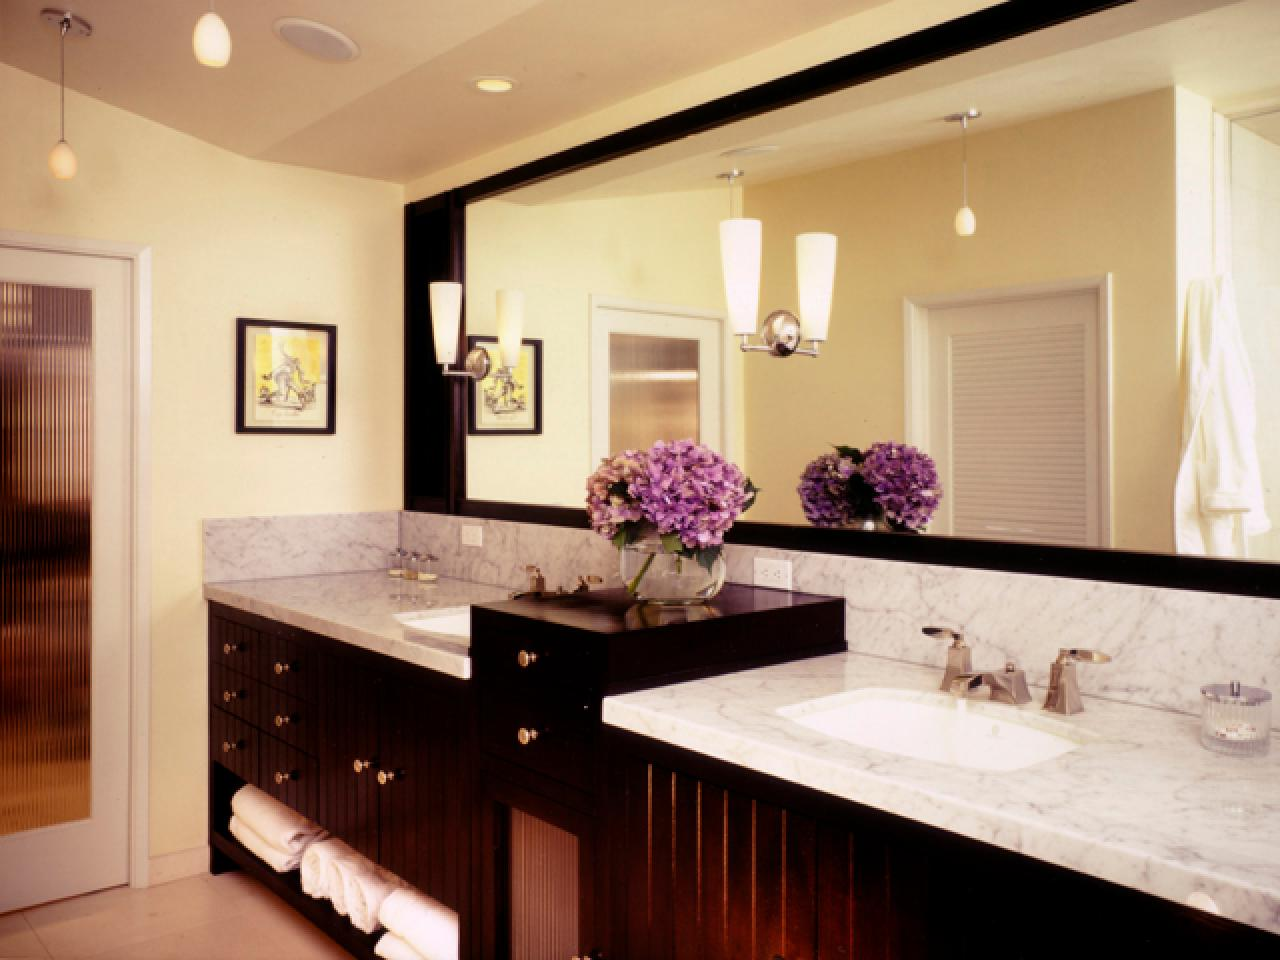 designing bathroom lighting hgtv. Black Bedroom Furniture Sets. Home Design Ideas